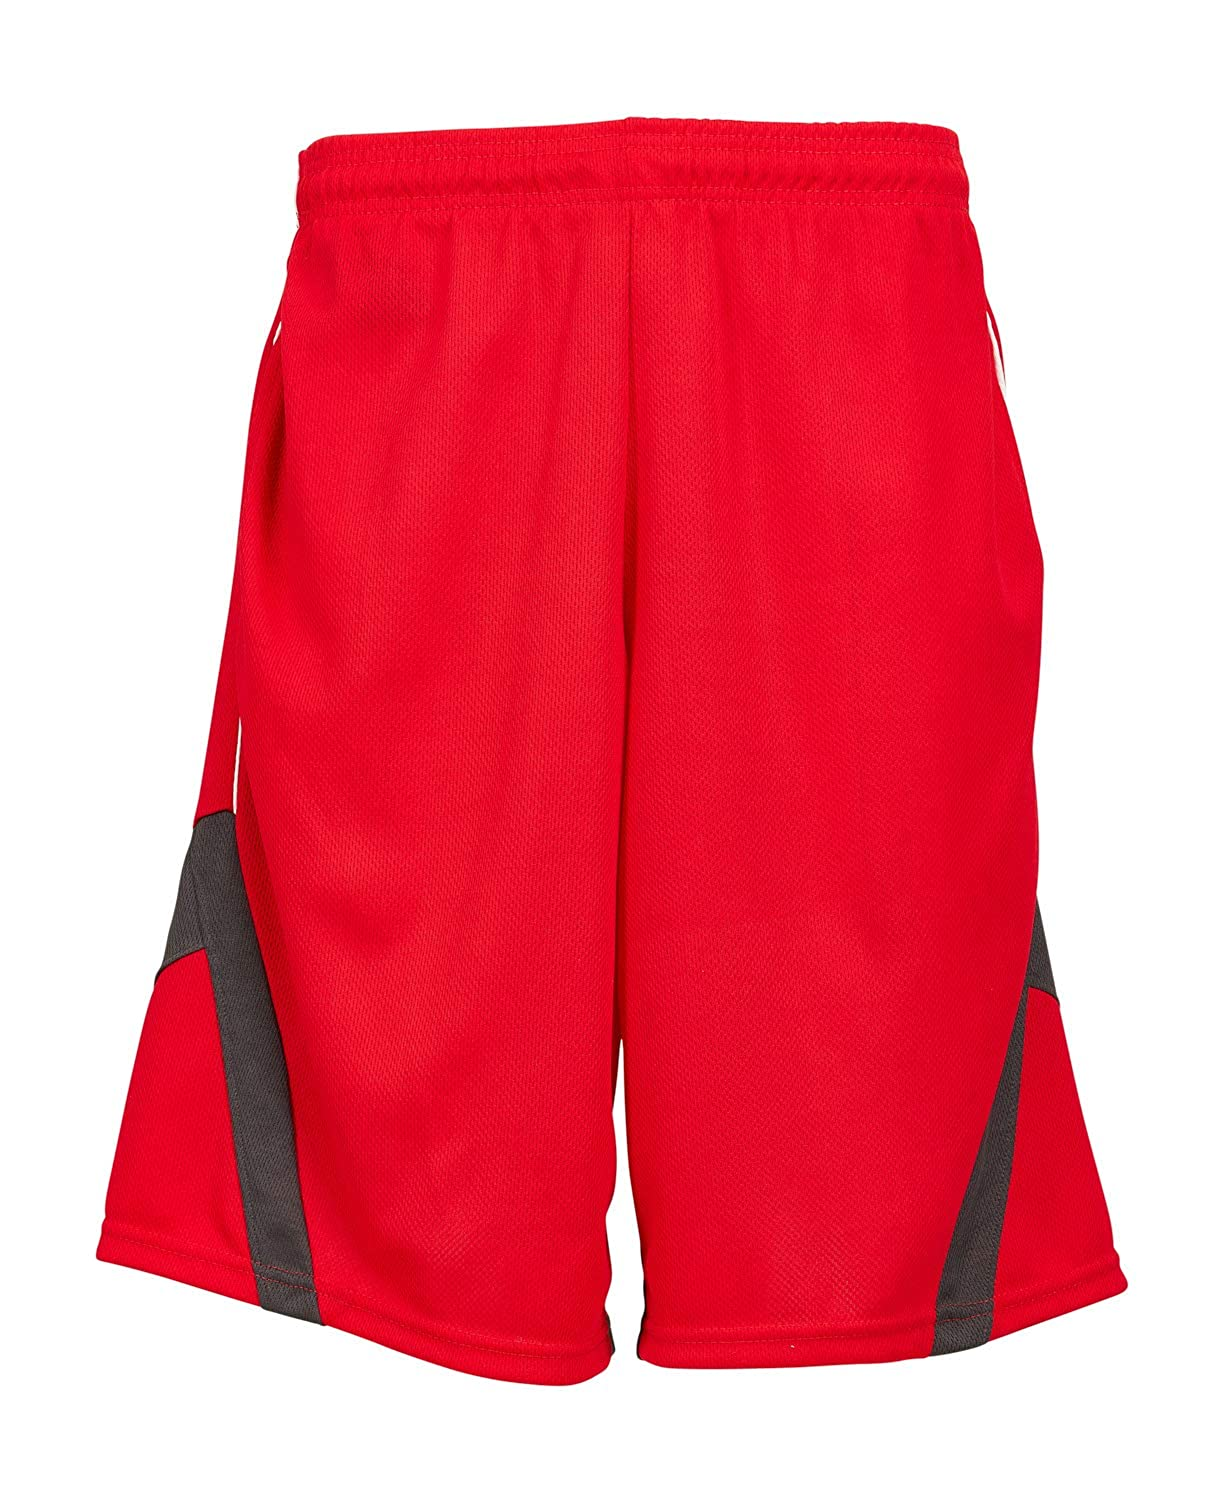 Premium Basketball Shorts for Men with Side Pockets